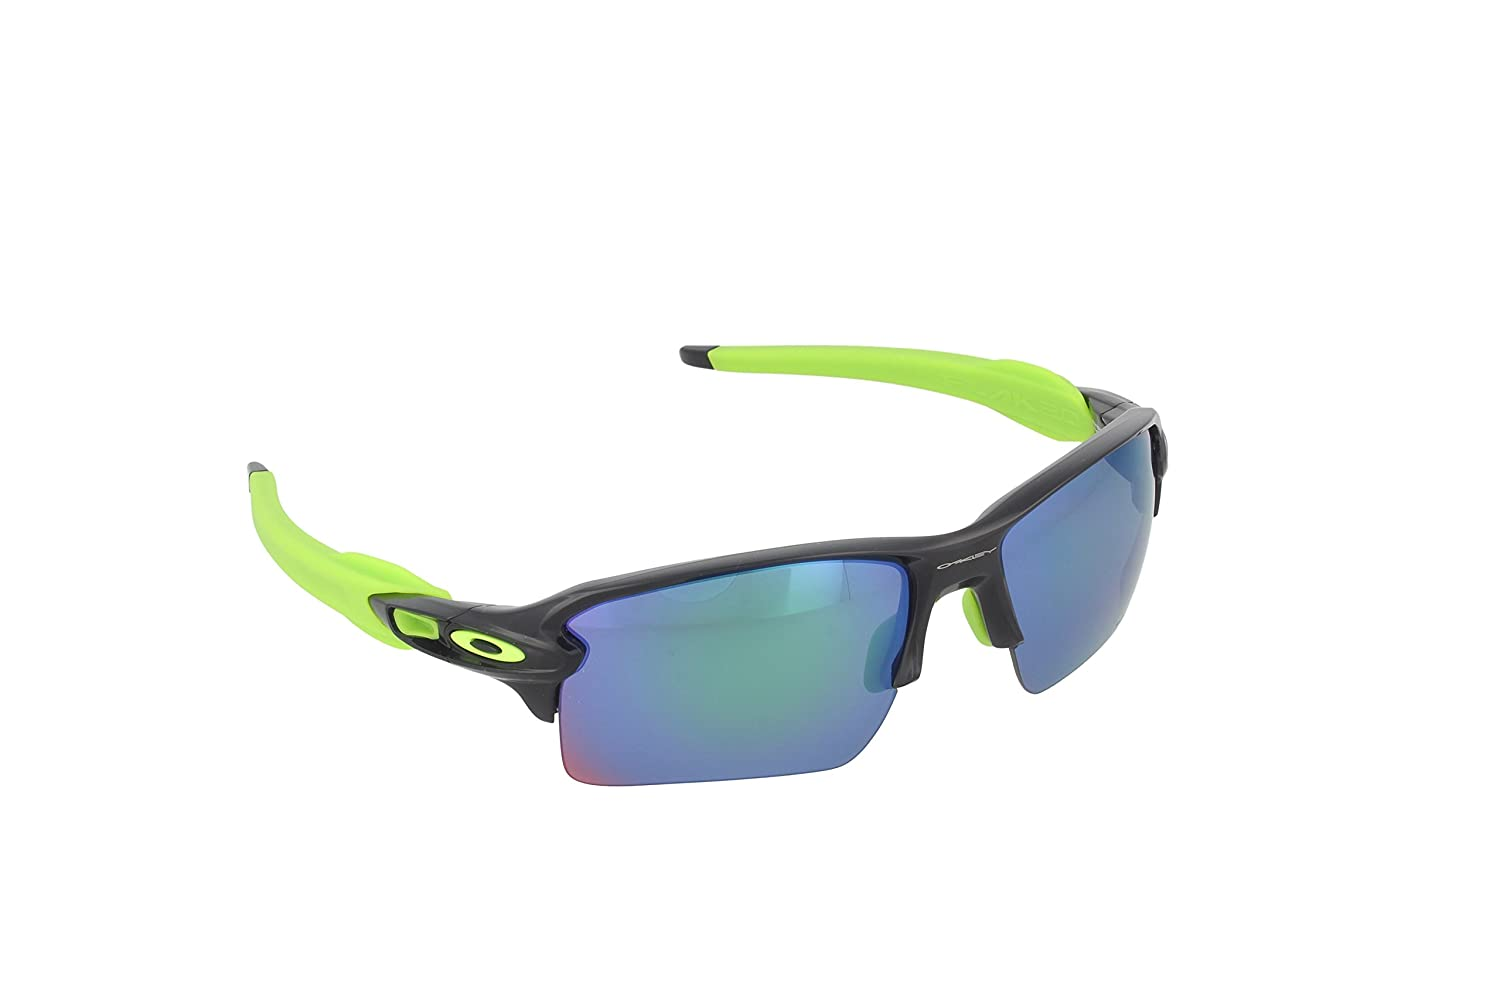 408ec8bafb Oakley Flak 2.0 XL Sunglasses  Oakley  Amazon.co.uk  Clothing